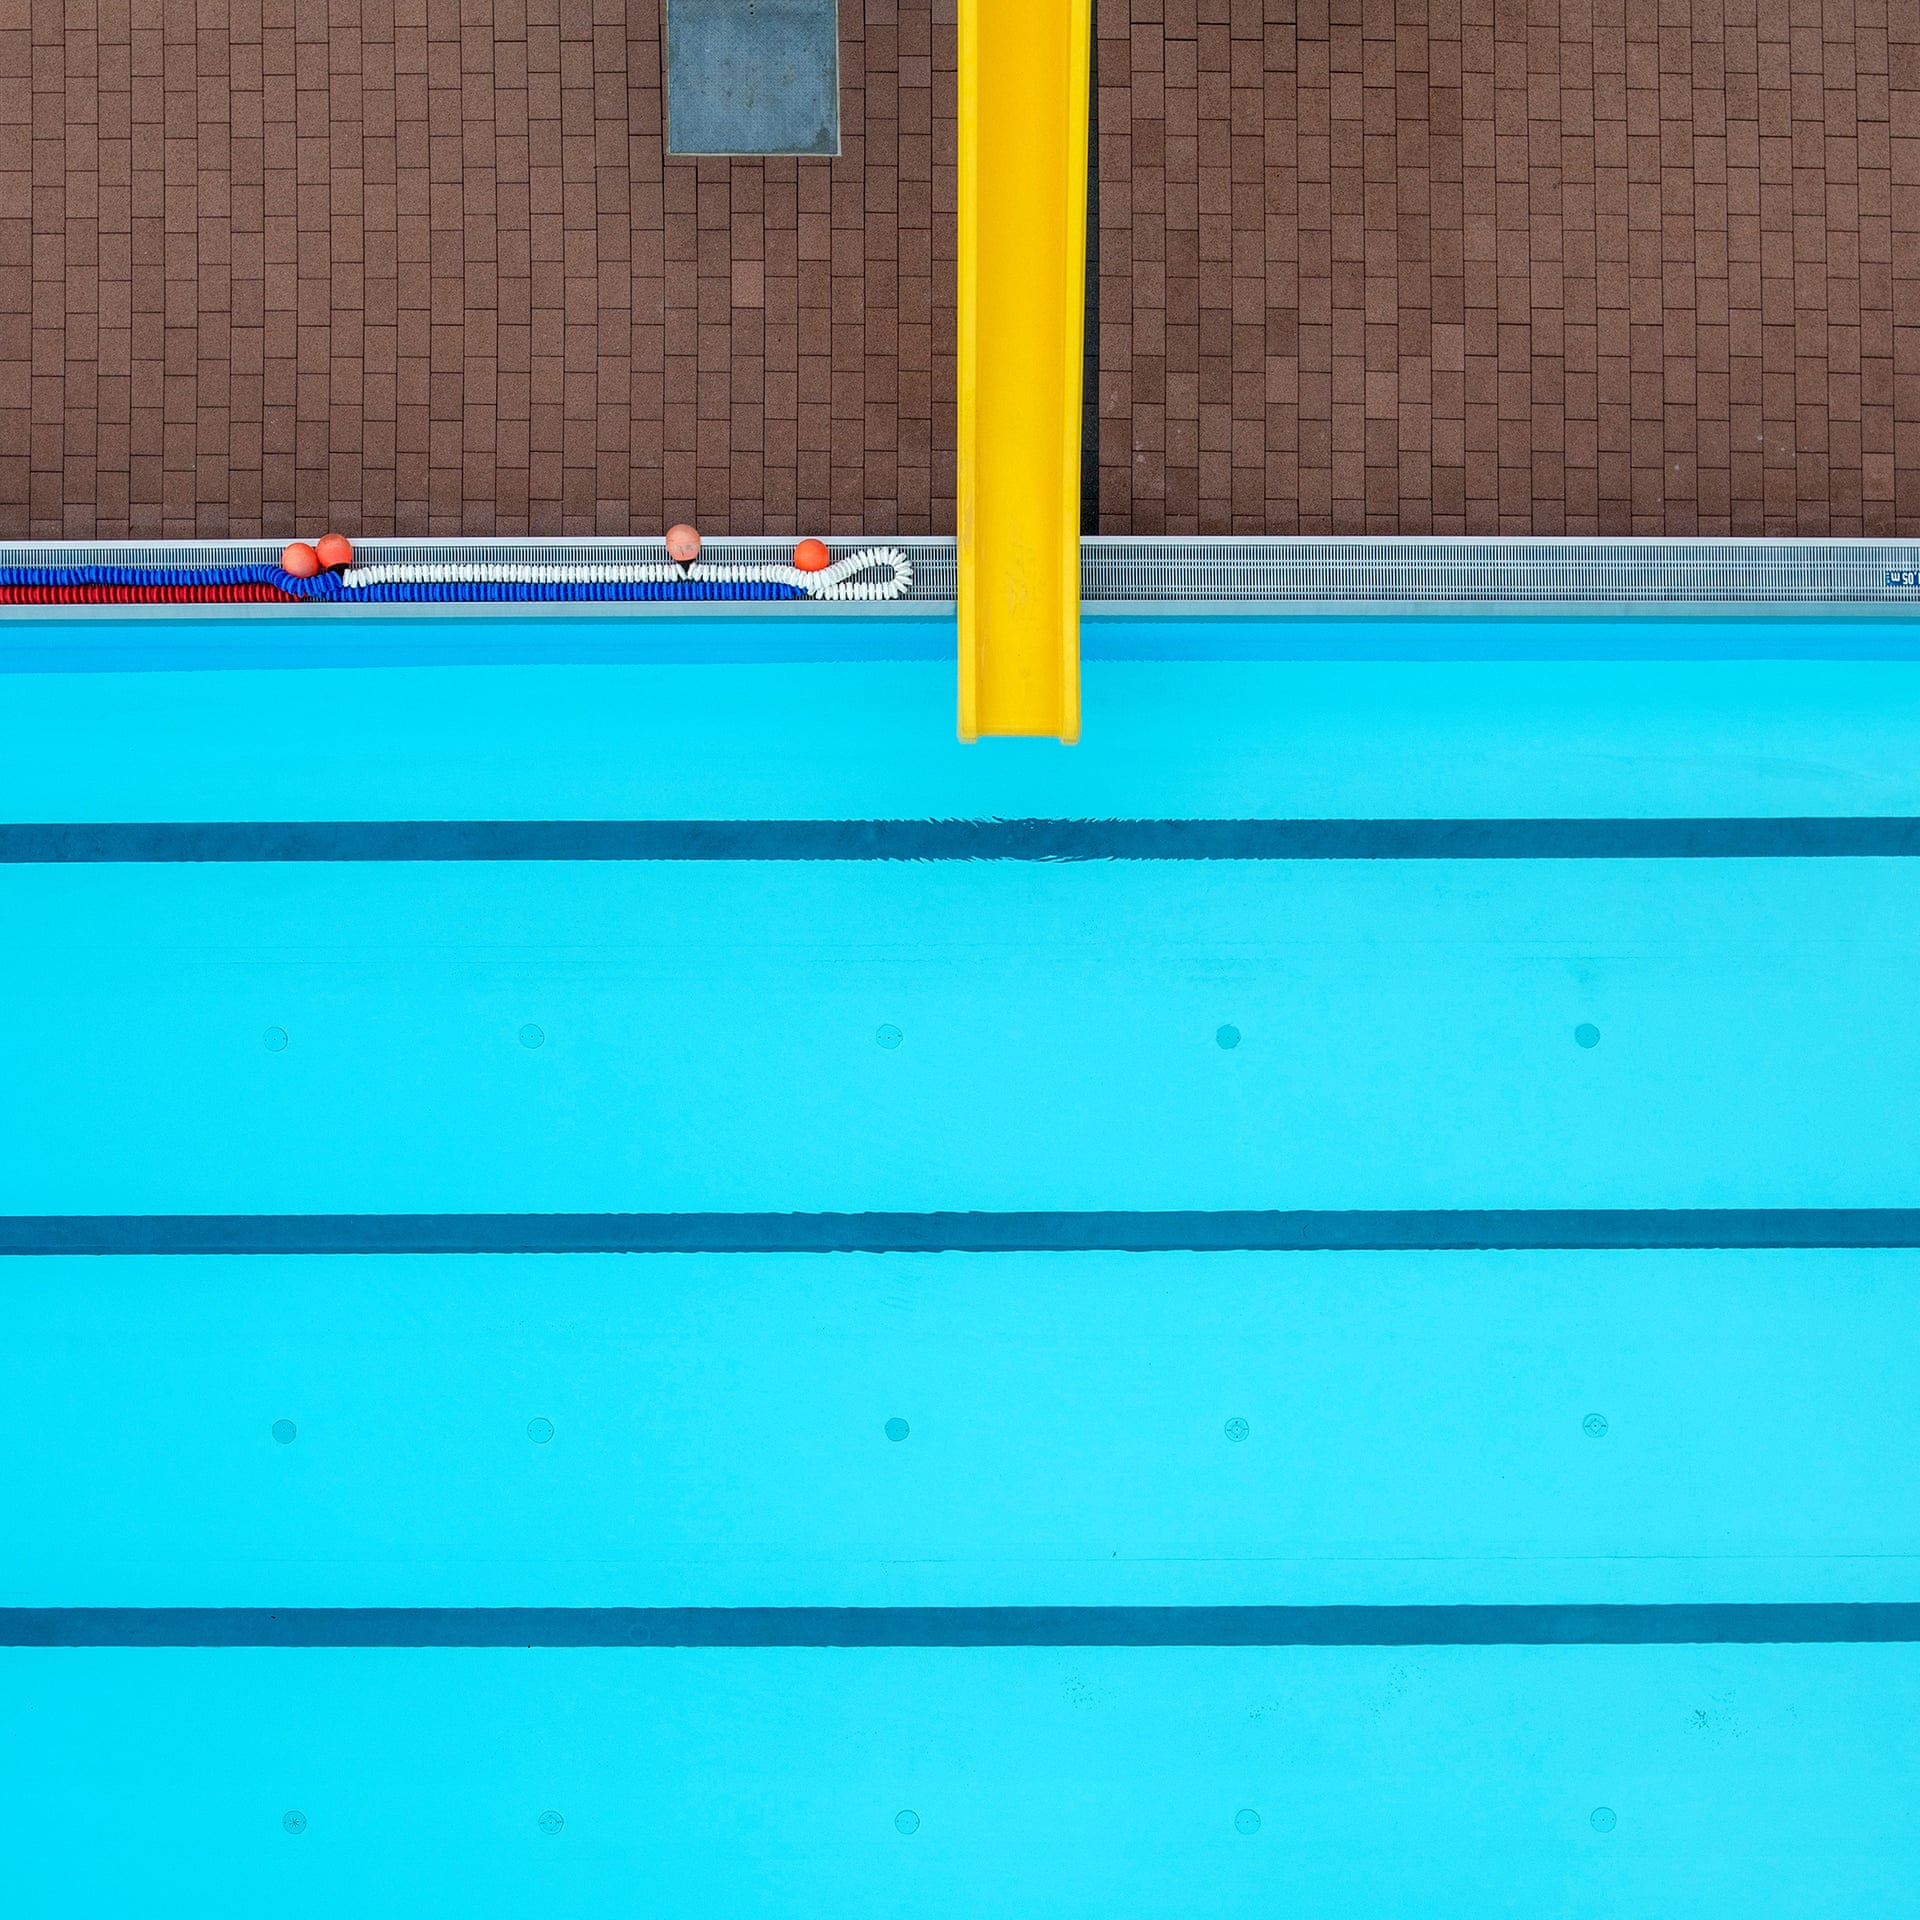 2200 - Dive in: aerial shots of German public swimming pools